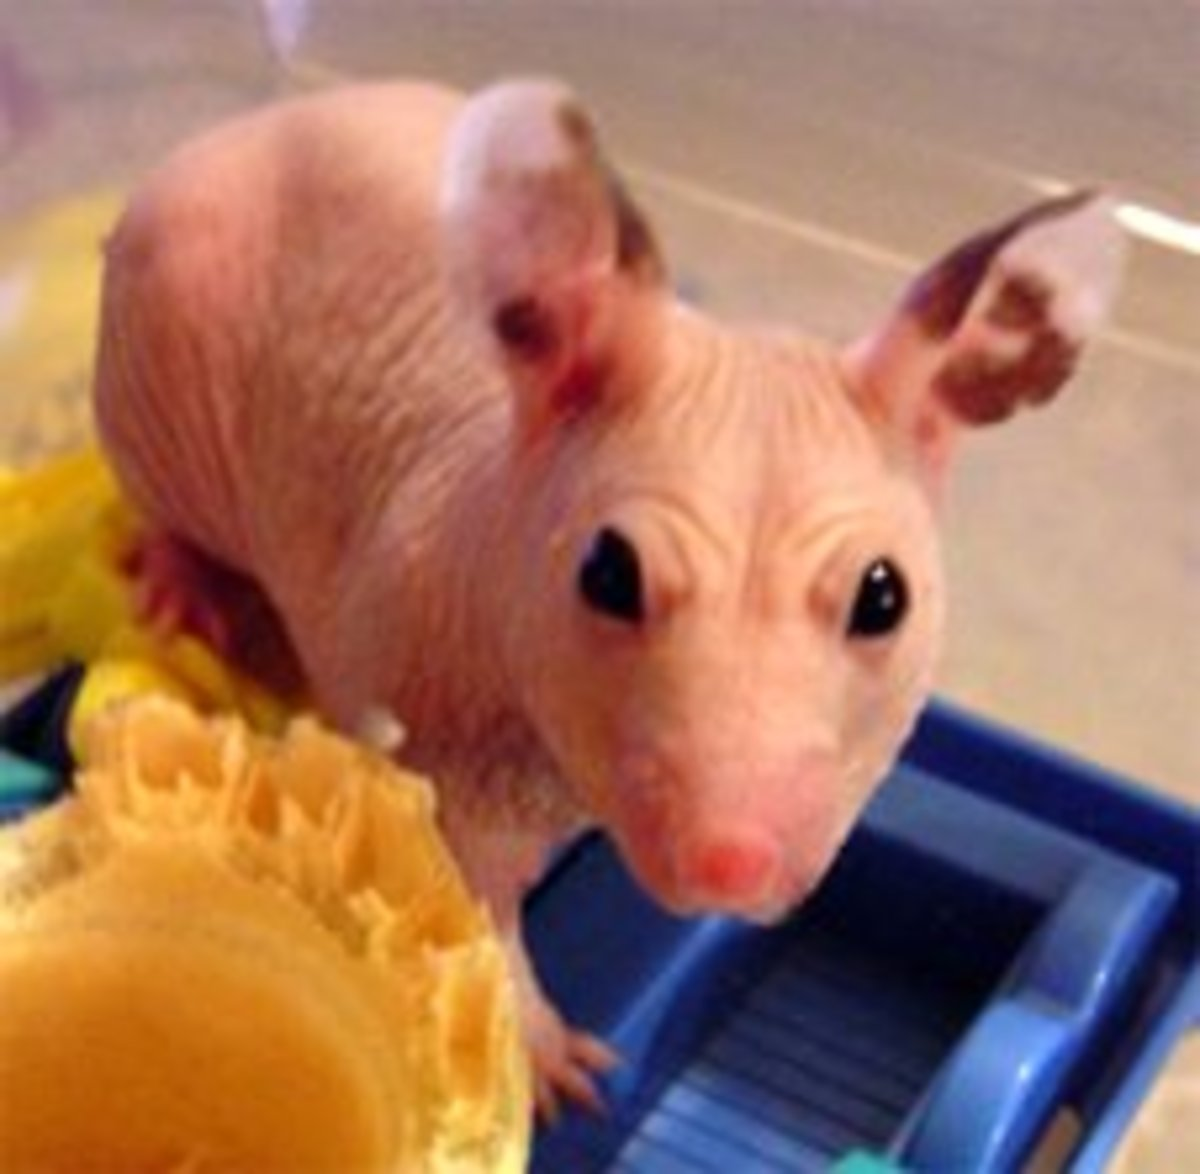 Hairless hamsters are becoming common in many pet stores. Would you own one?